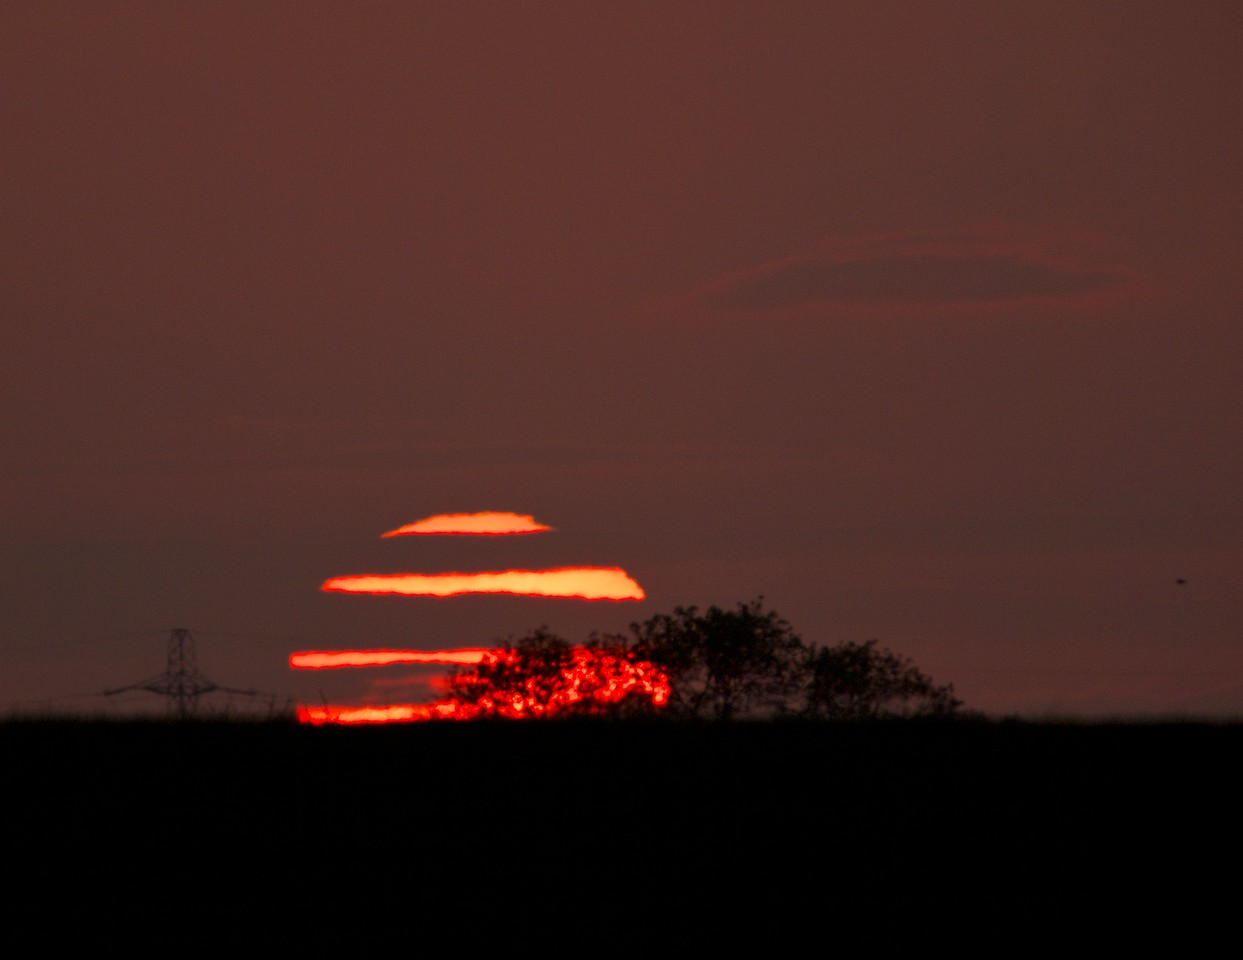 May 18 2011. Nice sunset tonight. Clouds & frontal system cleared through early evening paving the way for clear skies. Hopped into a local field and upped the focal length with the 90-250mm & x2TC, netting a 500mm (1000mm equiv 35mm) focal length. The low level strata cloud cover actually made the shot.